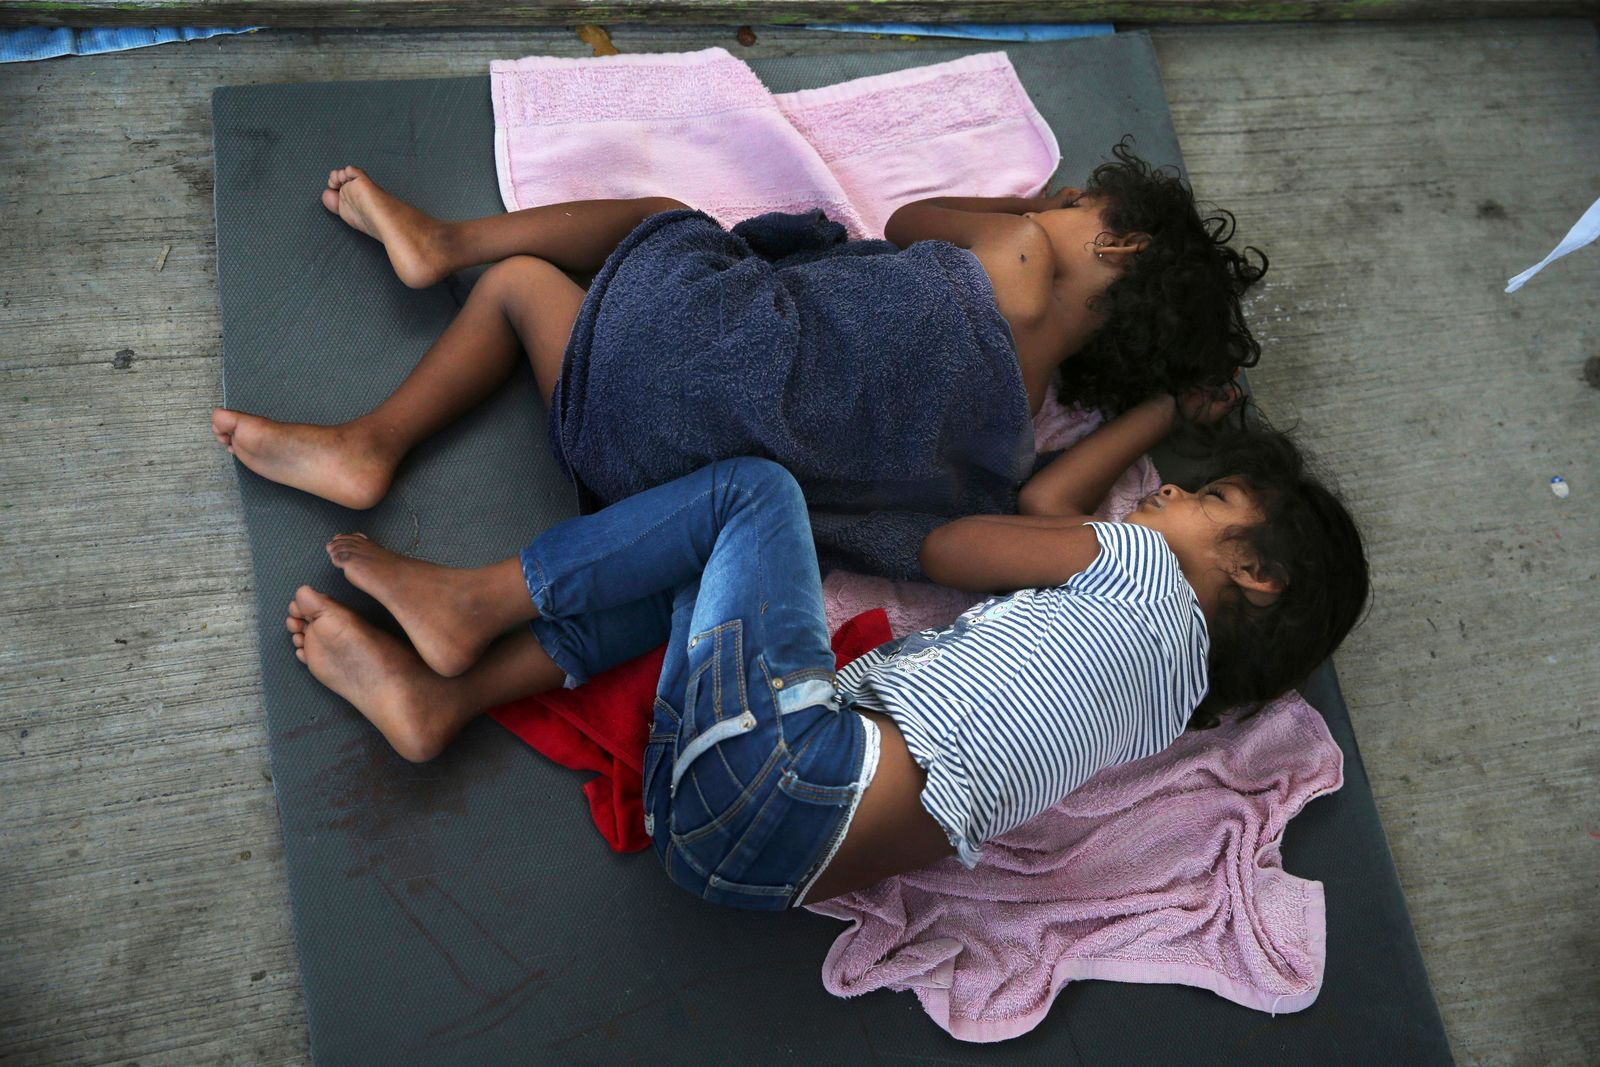 FILE - In this July 17, 2019, file photo, migrant children sleep on a mattress on the floor of the AMAR migrant shelter in Nuevo Laredo, Mexico. (AP Photo/Marco Ugarte, File)